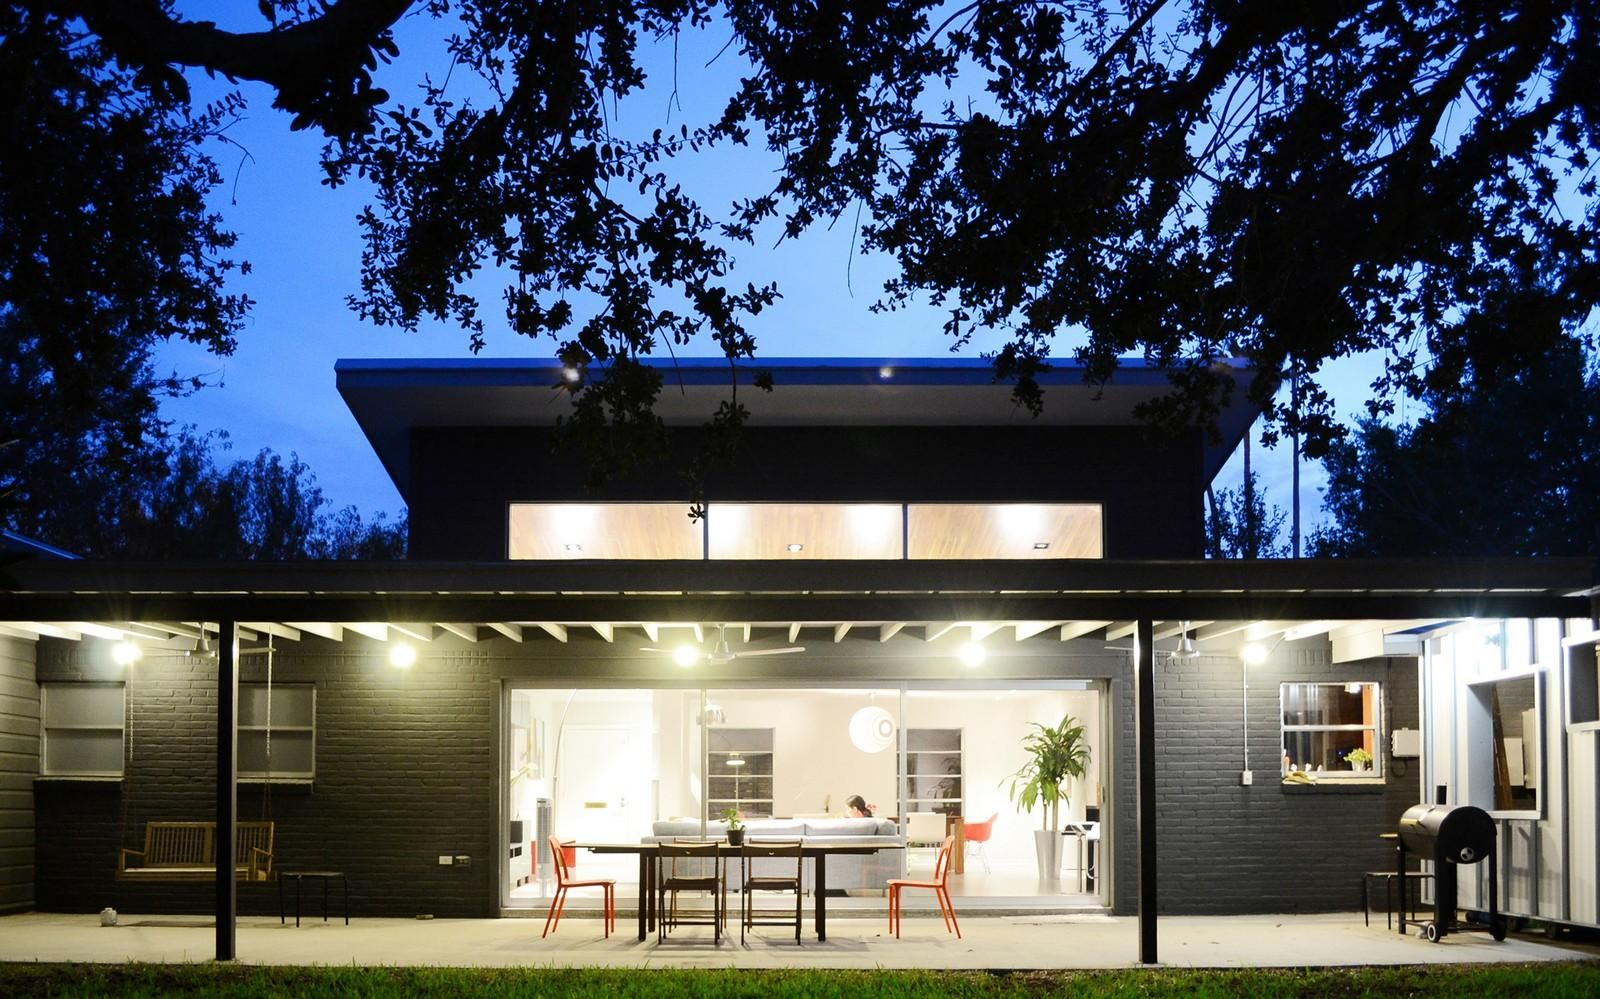 Casa Westway by kad   katagiri architecture+design in collaboration with LR Studio